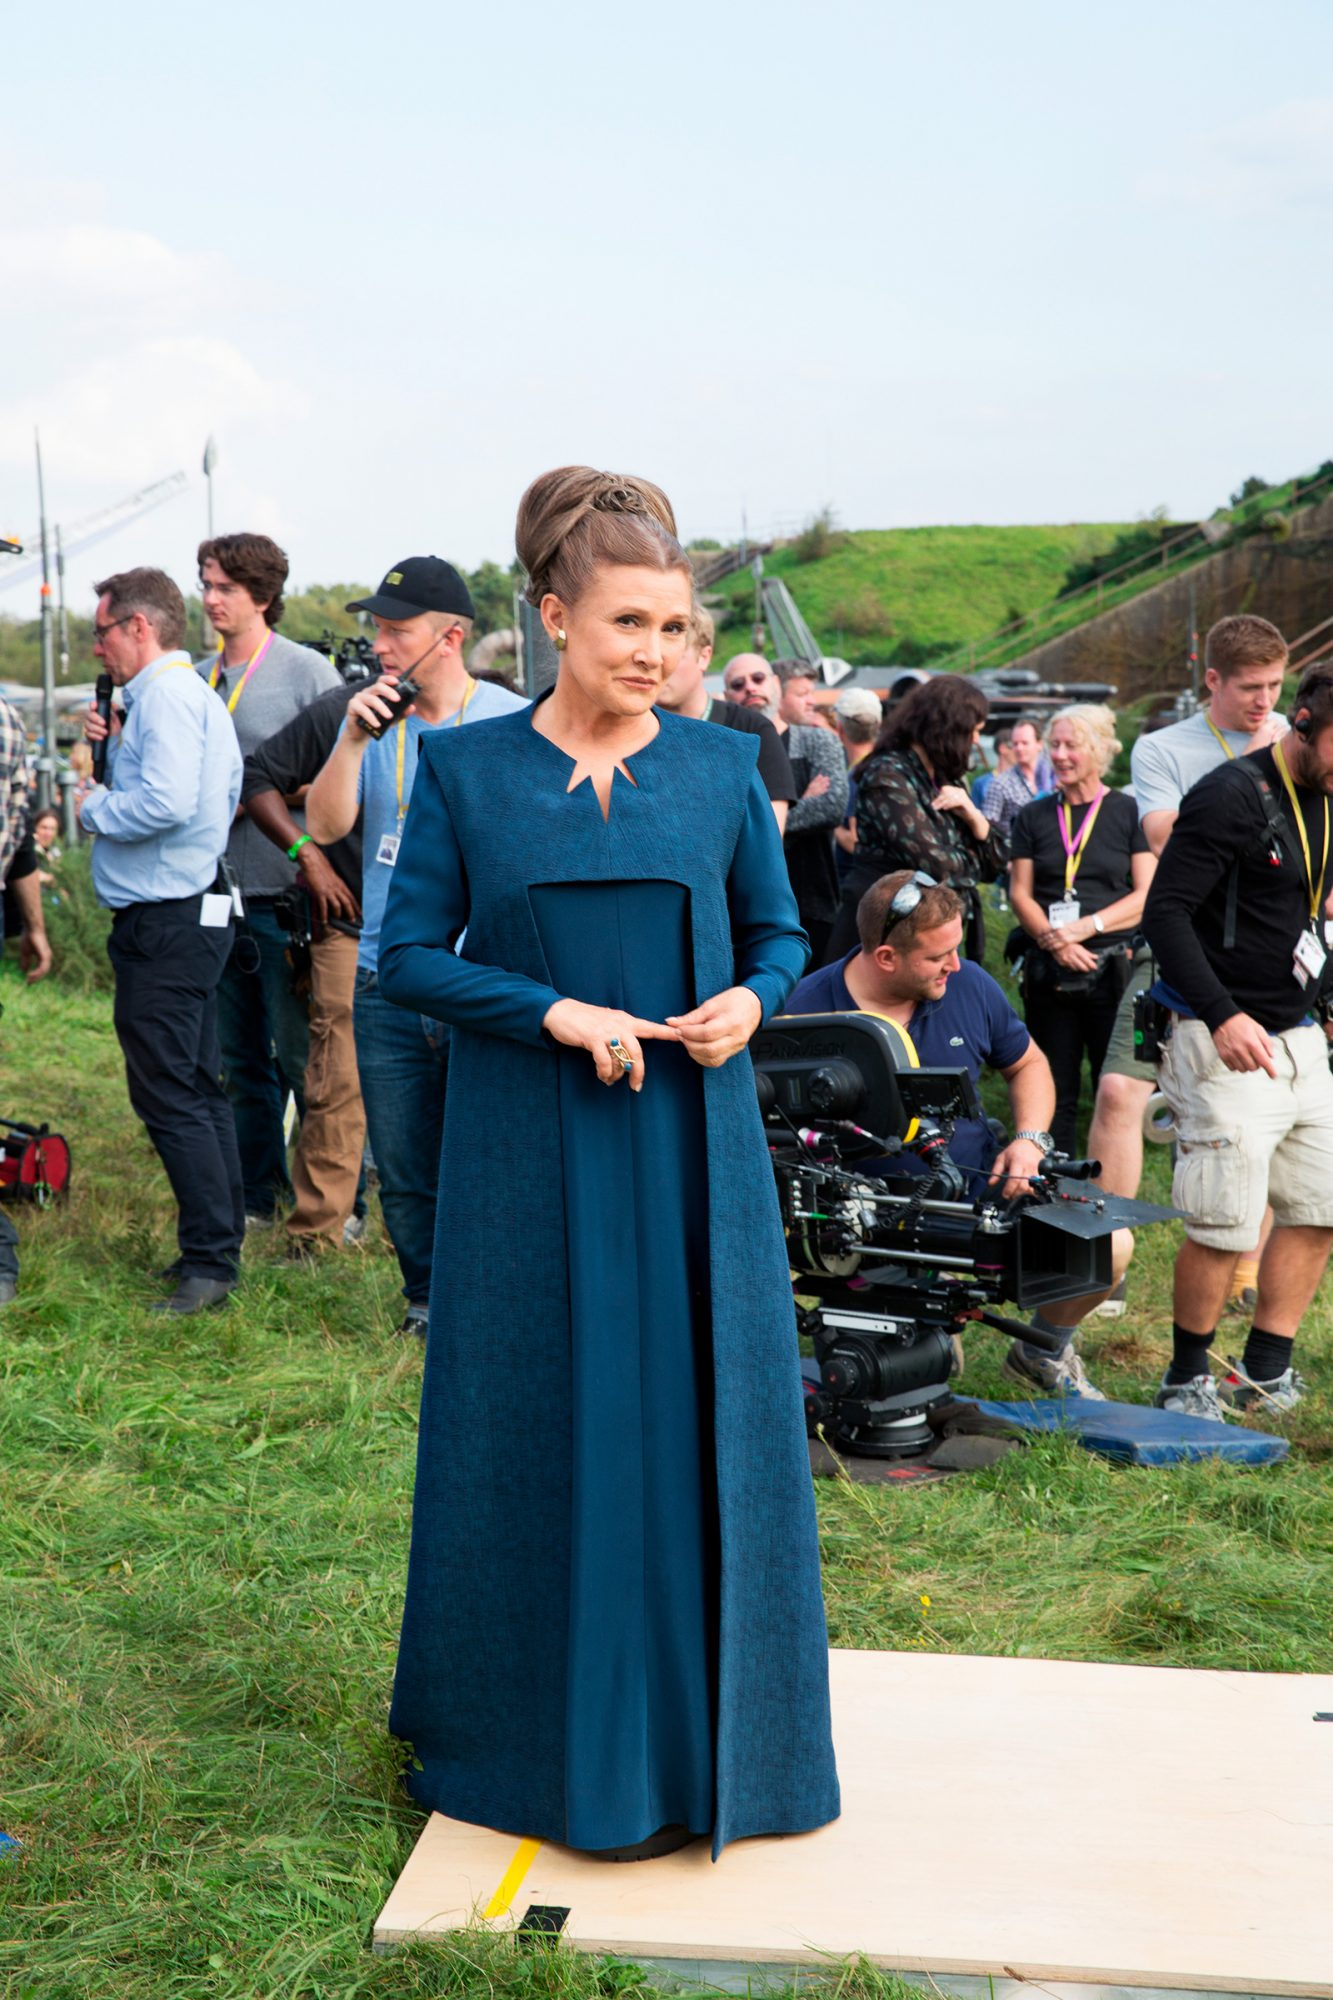 Star Wars: The Last Jedi Pictured:Carrie Fisher on the set of Star Wars: The Force Awakens